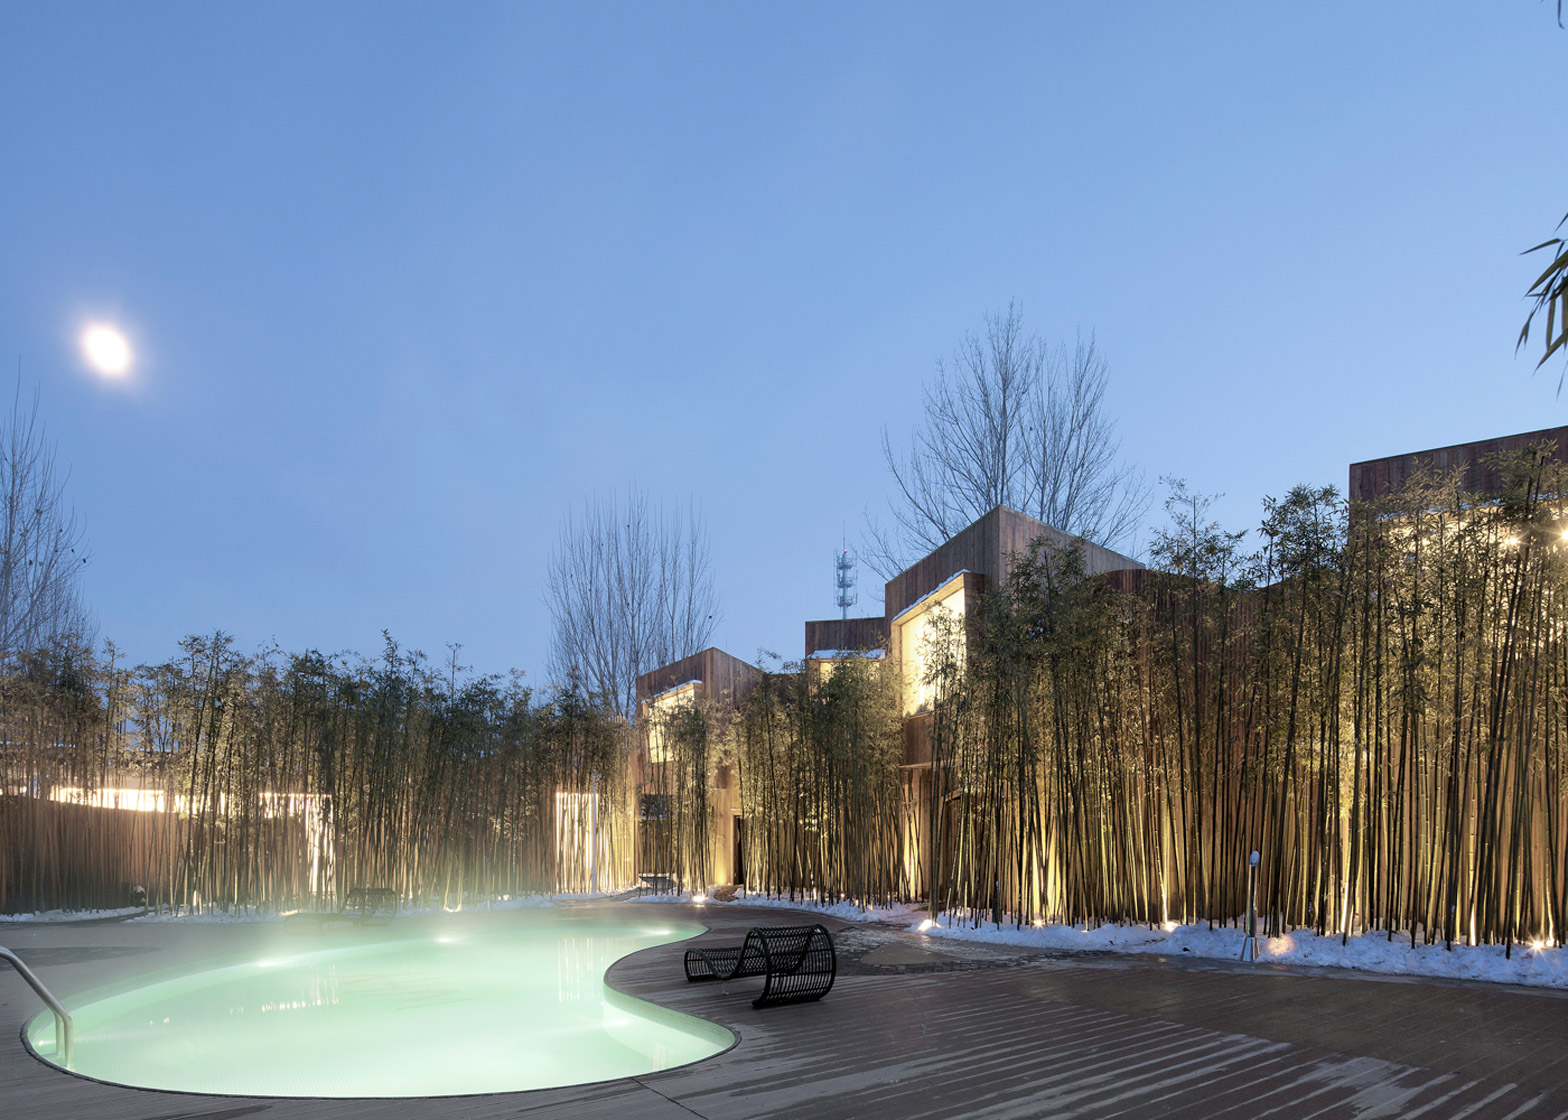 Why Hotel by Elevation Workshop and WEI Architects